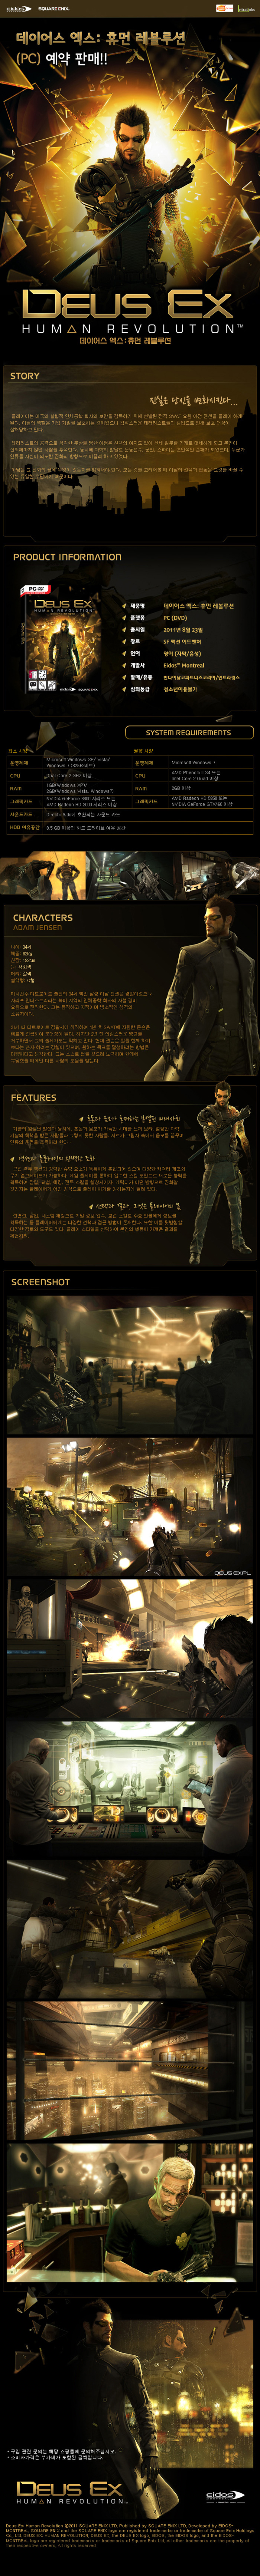 [ INTRAGAMES ] [ PC ] DEUS EX 的人类革命